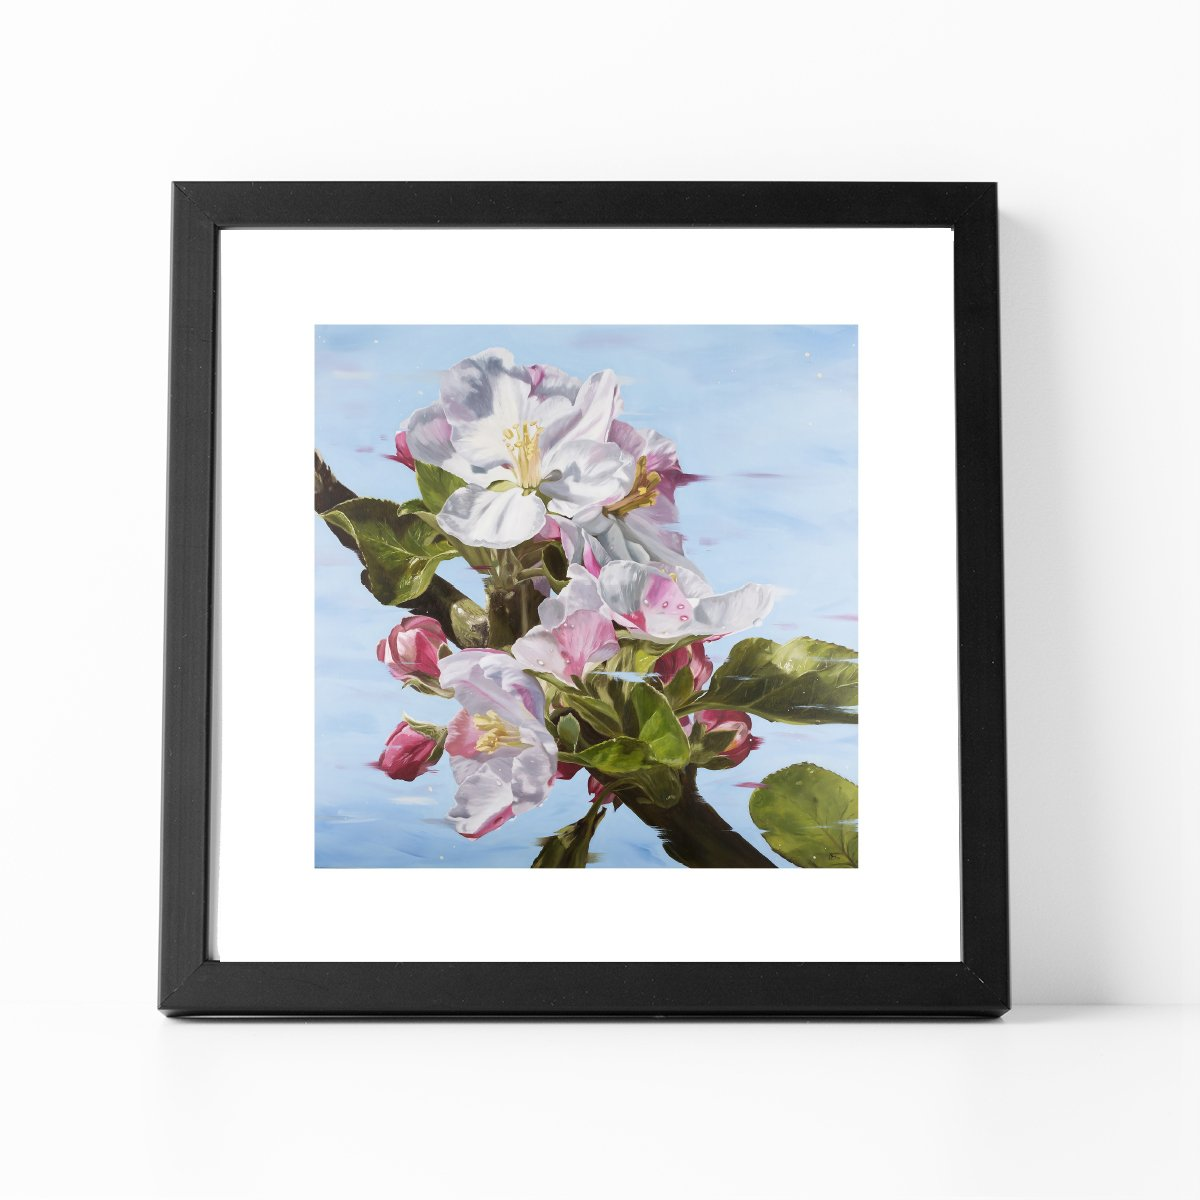 Framed print of The Promise apple blossom painting